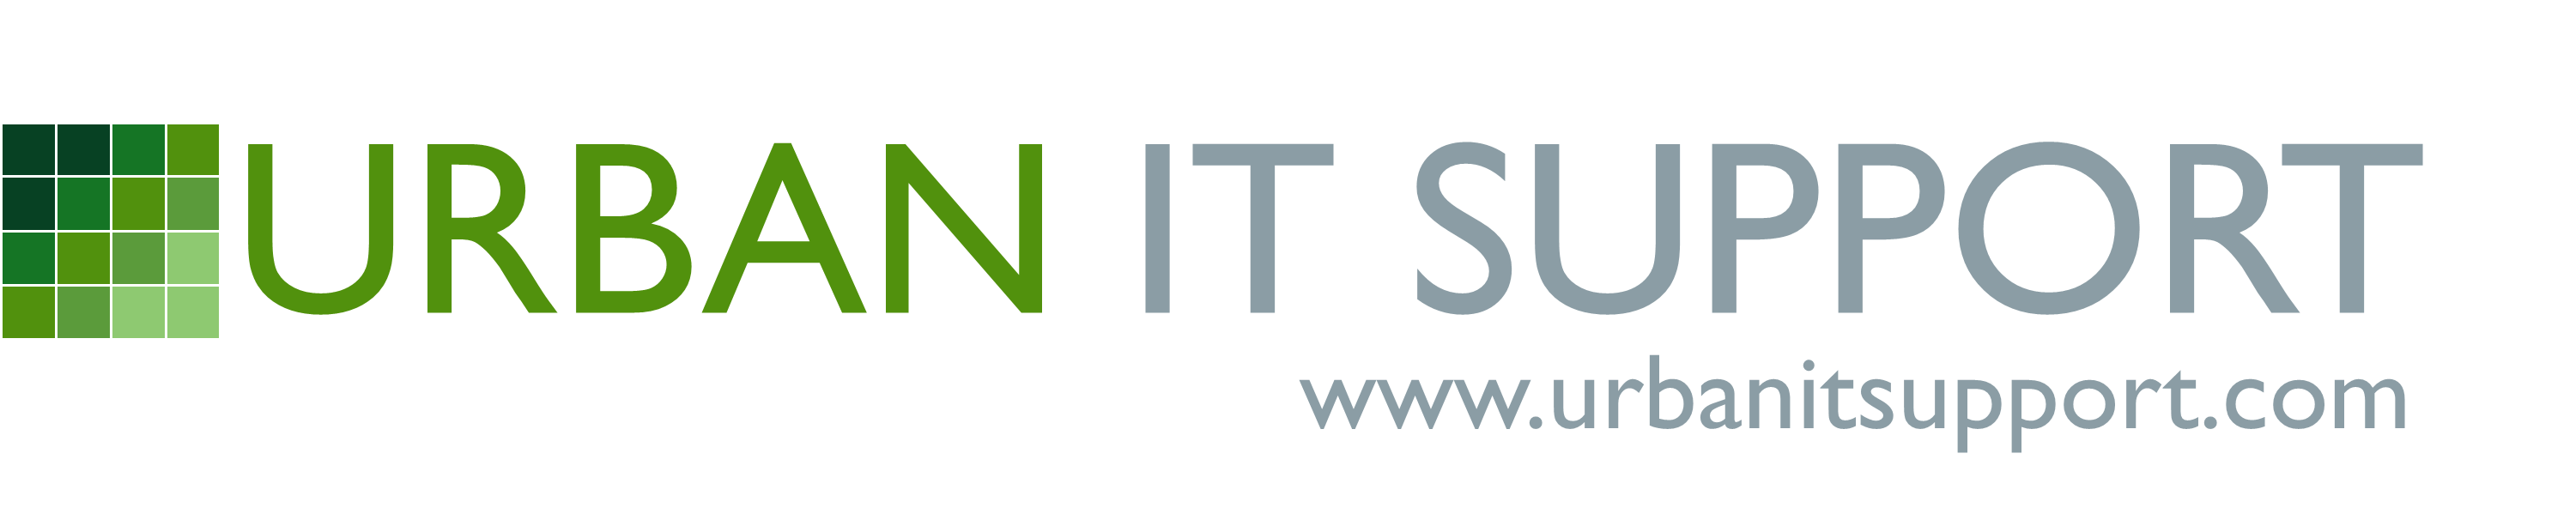 Urban IT Support logo